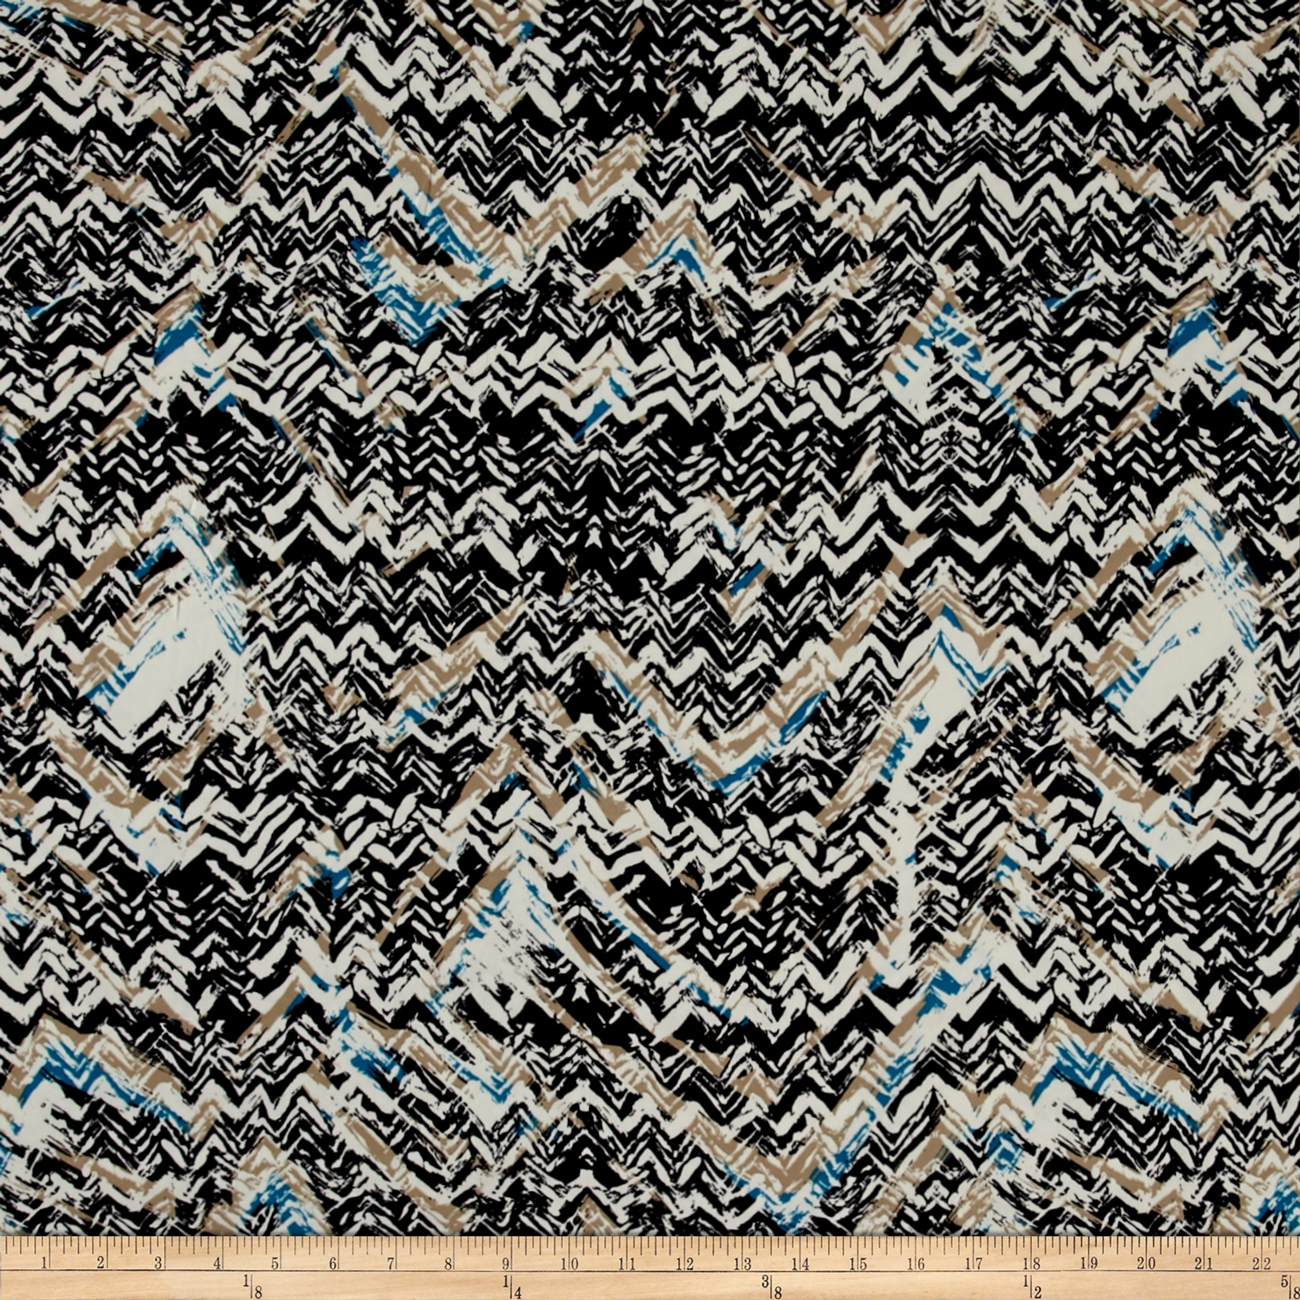 Abstract Zig Zag Dobby Crepe Print Black/Teal Fabric